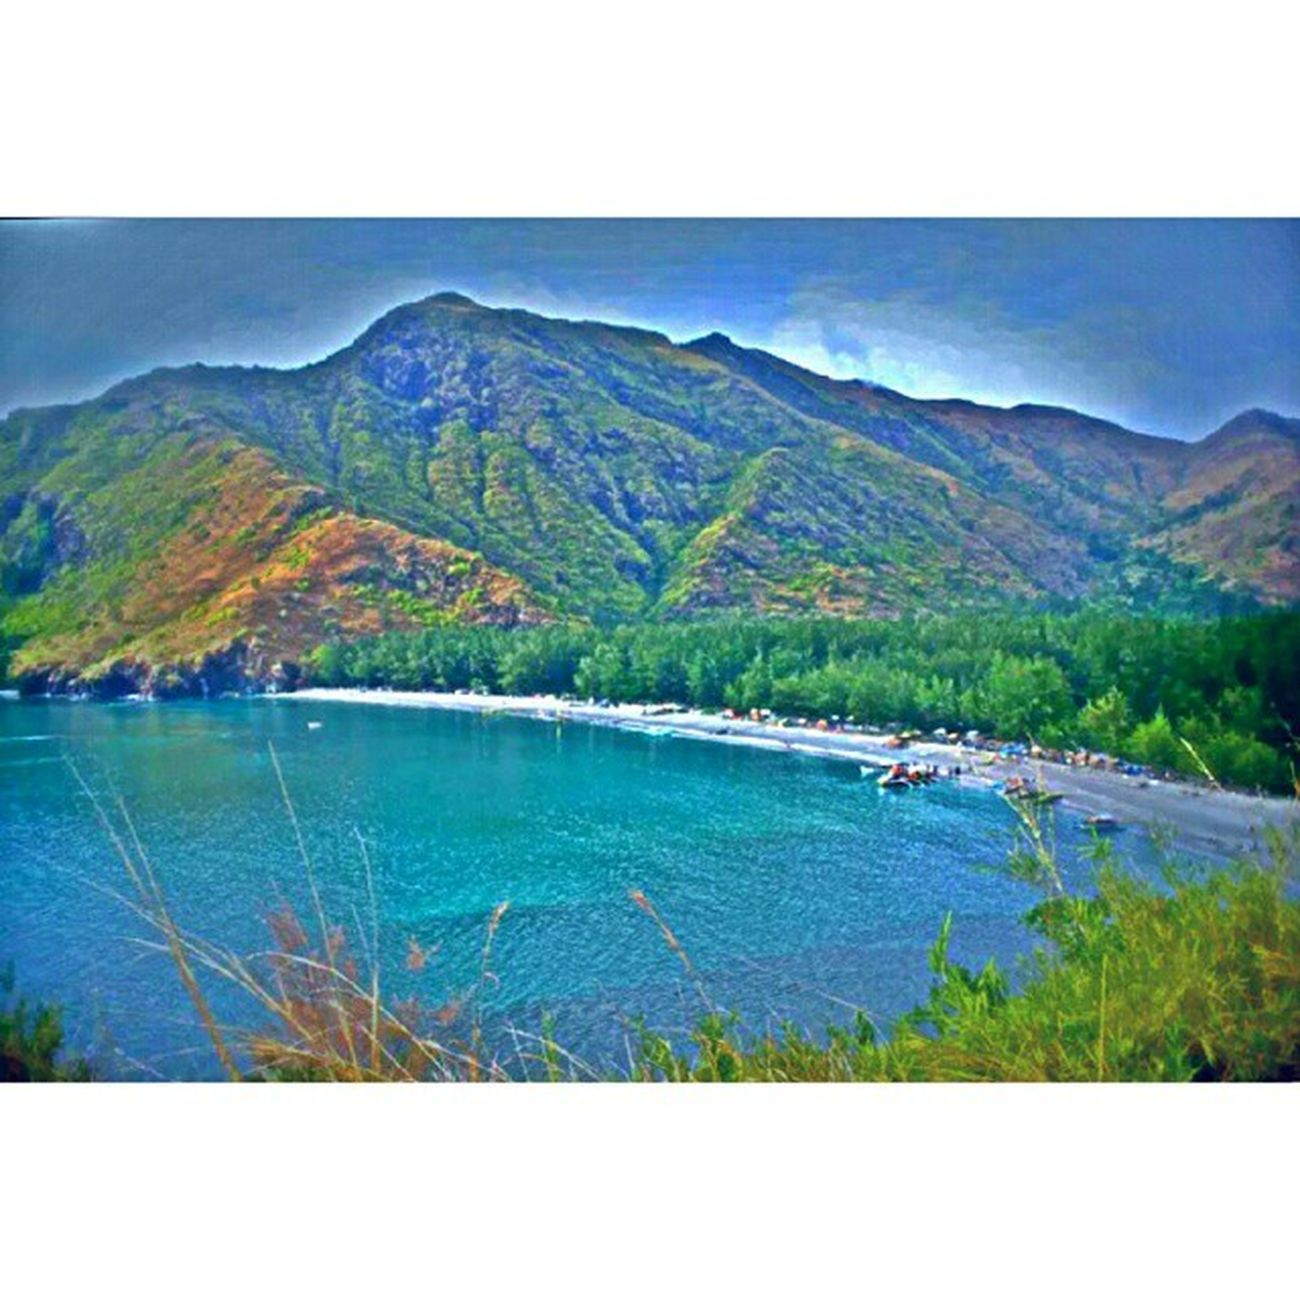 Top View Anawangin Philippines Travel Memories beach mountain anawanginwildlife